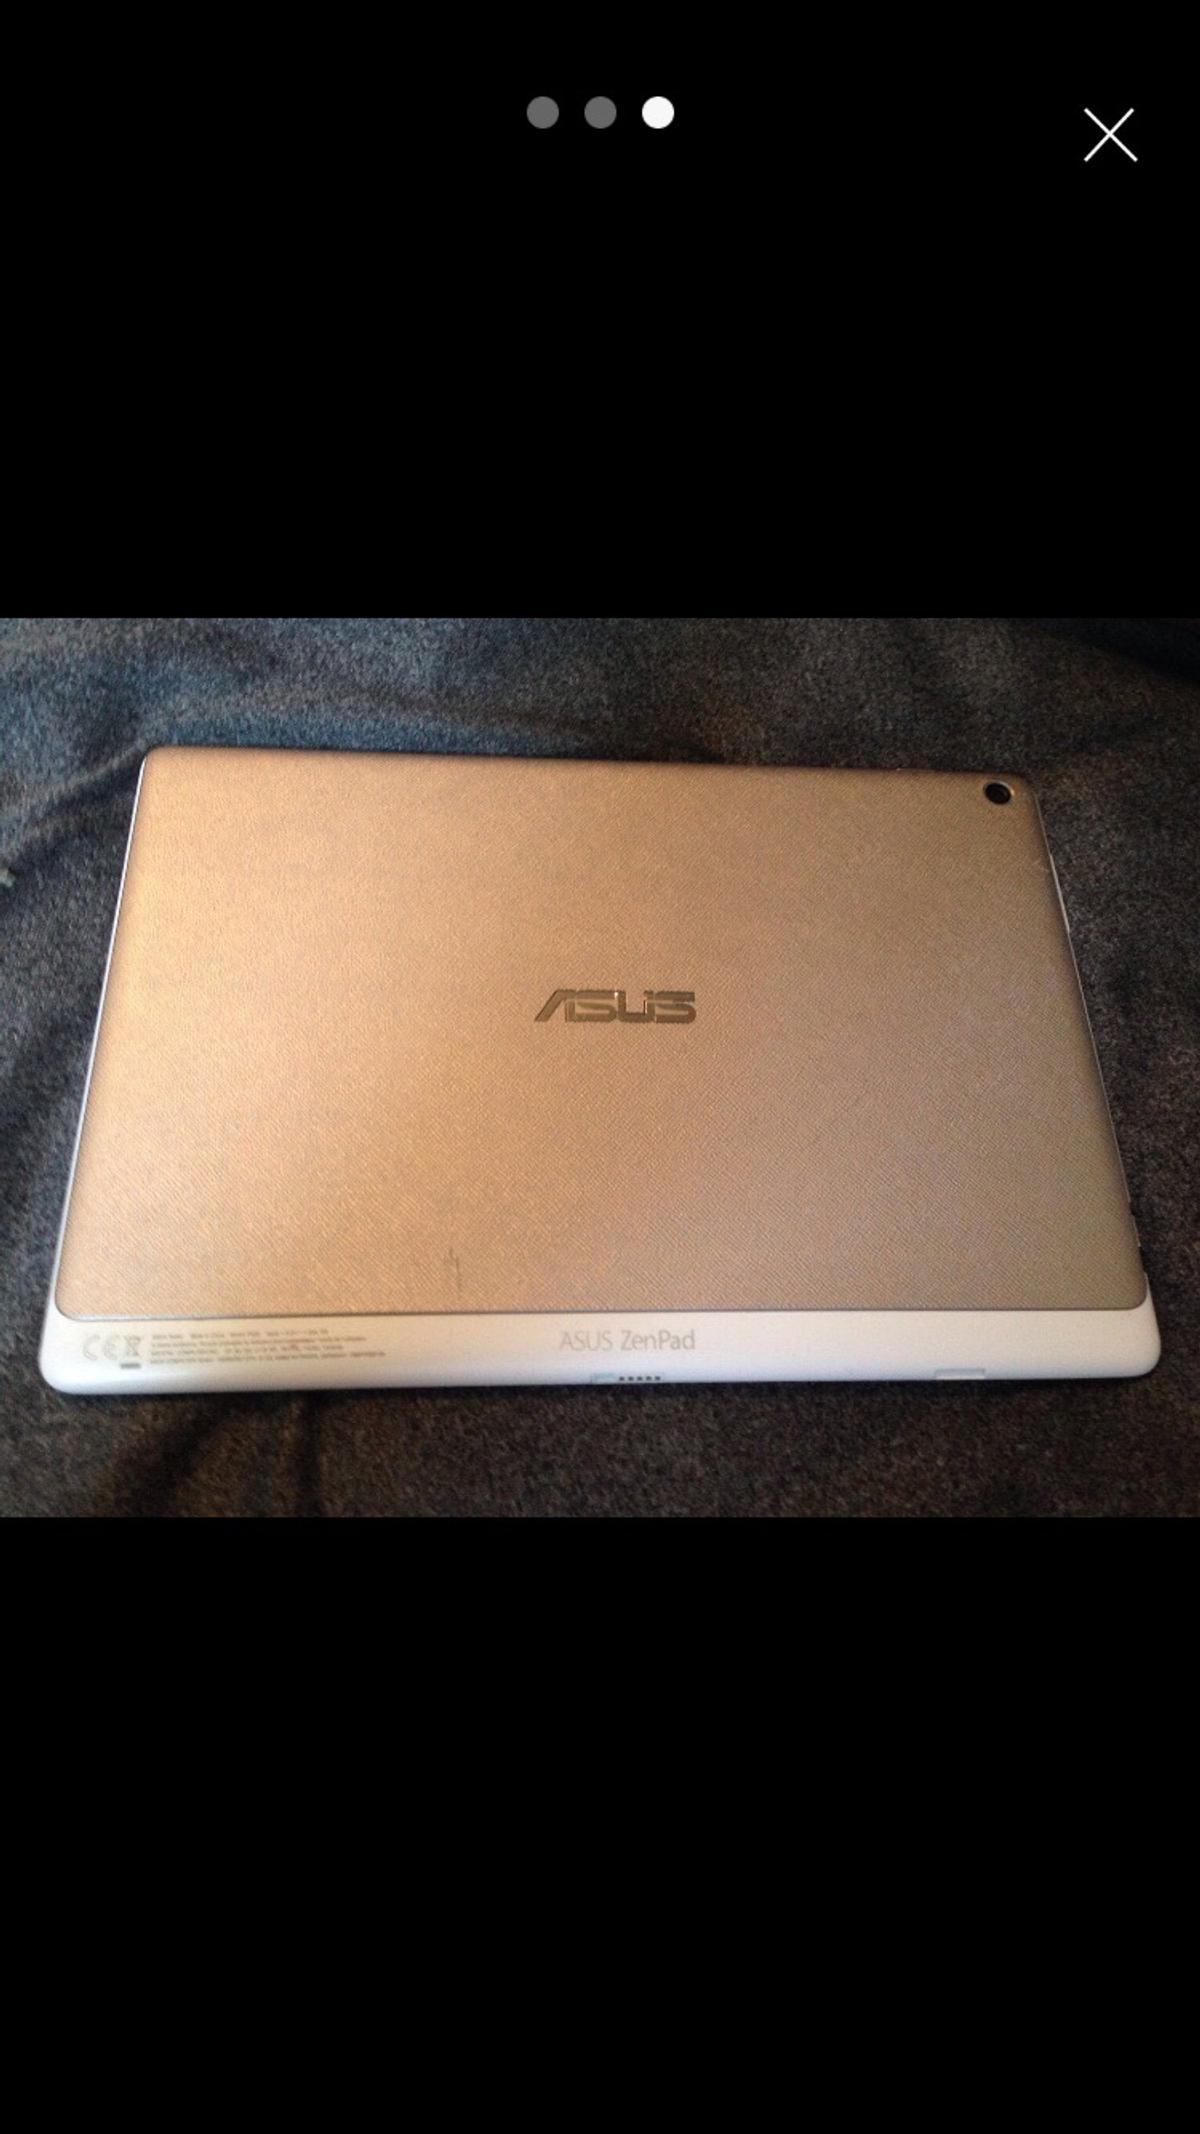 Asus zenpad 10 android tablet